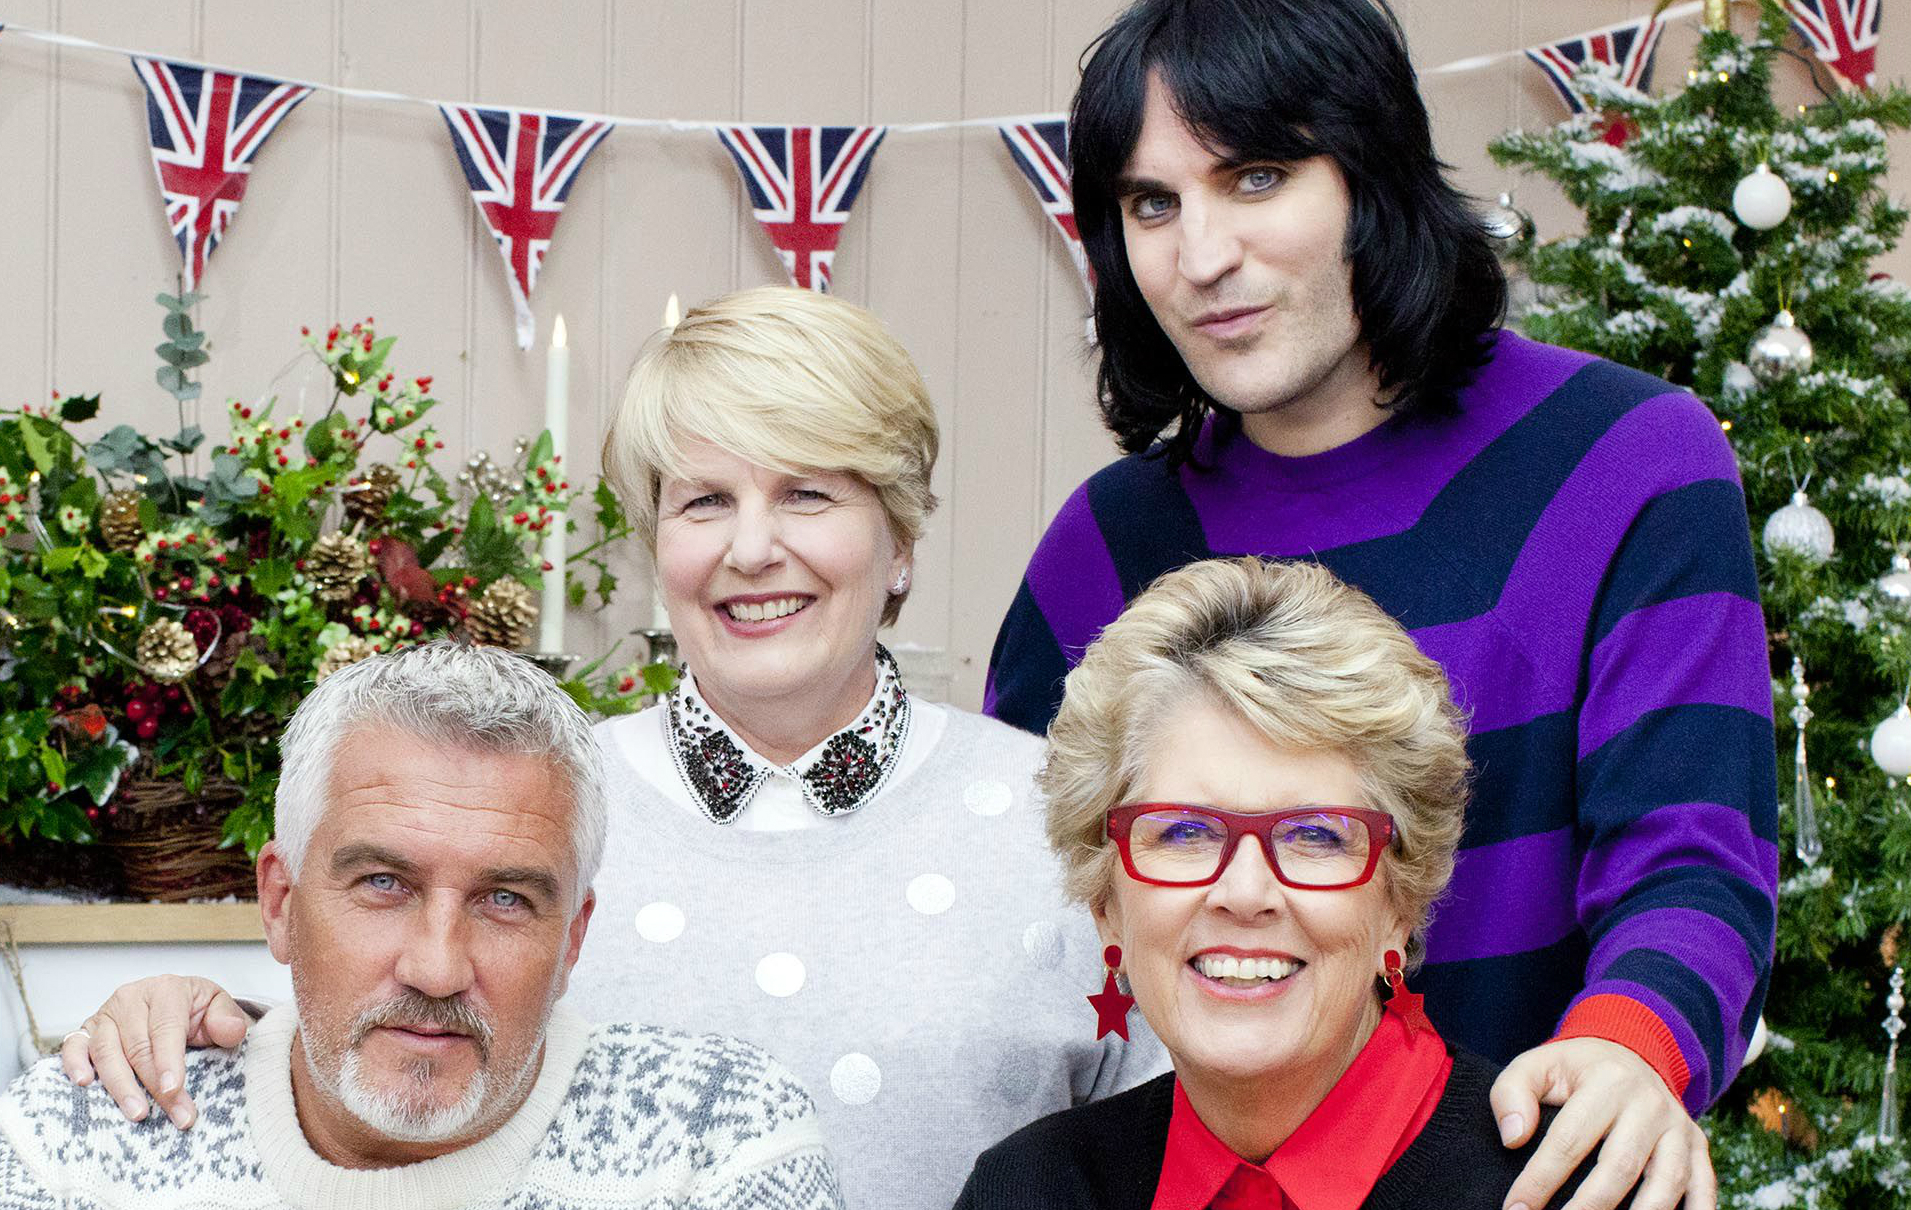 The Great British Bake Off Christmas and New Year's specials